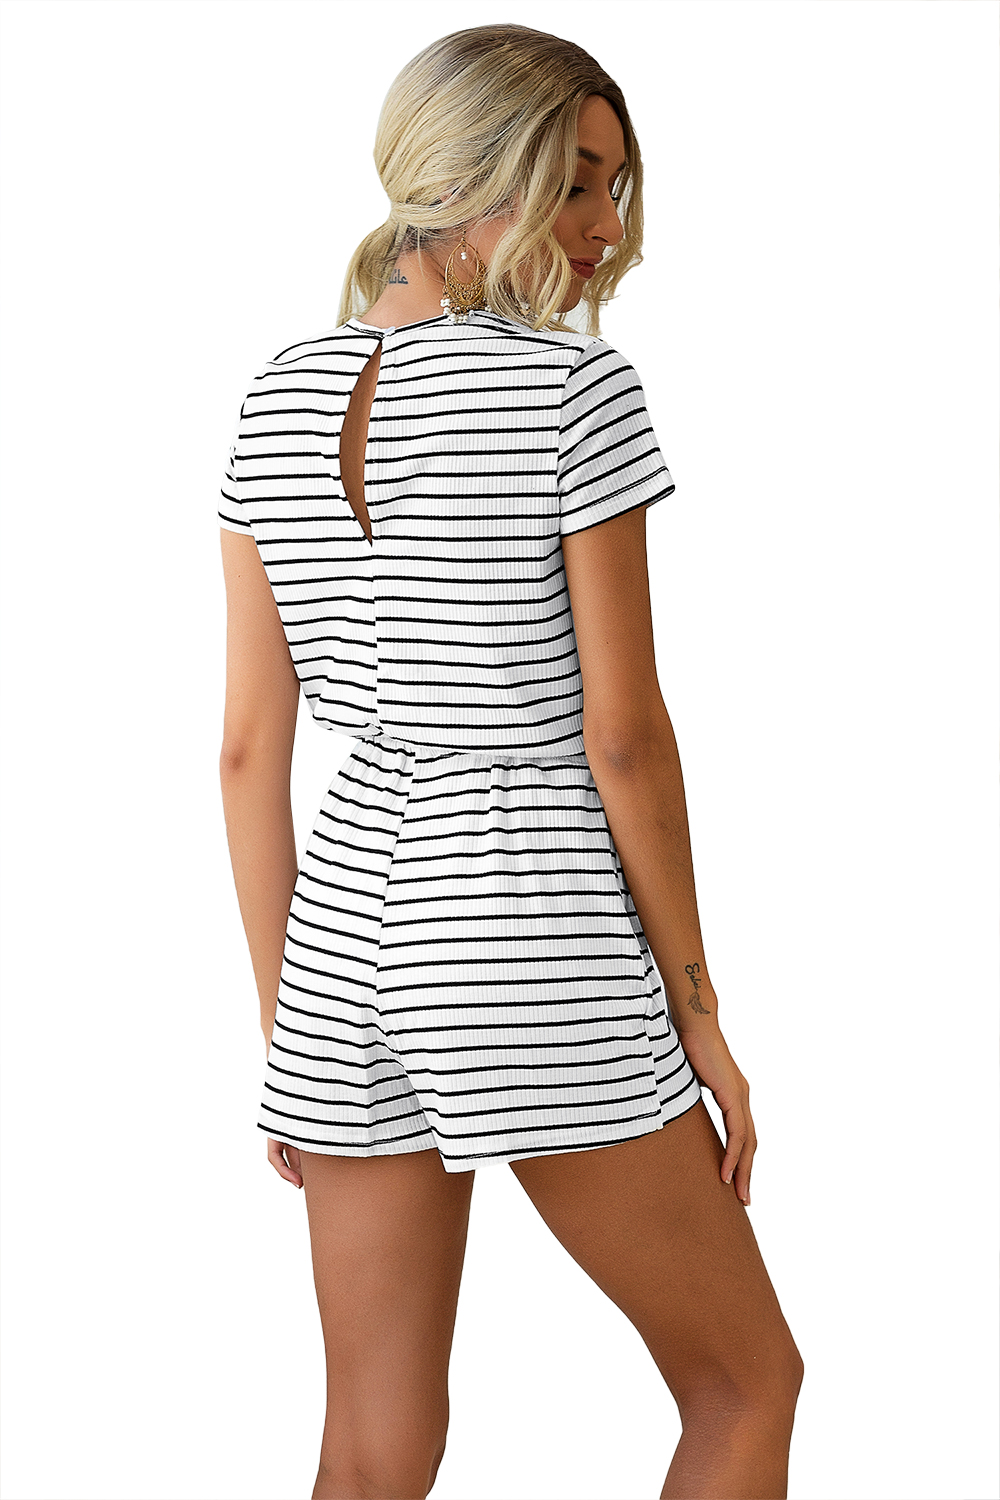 Women Striped Jumpsuits shorts Girls Round neck Home Leisure Summer Beach party Playsuits Female Rompers